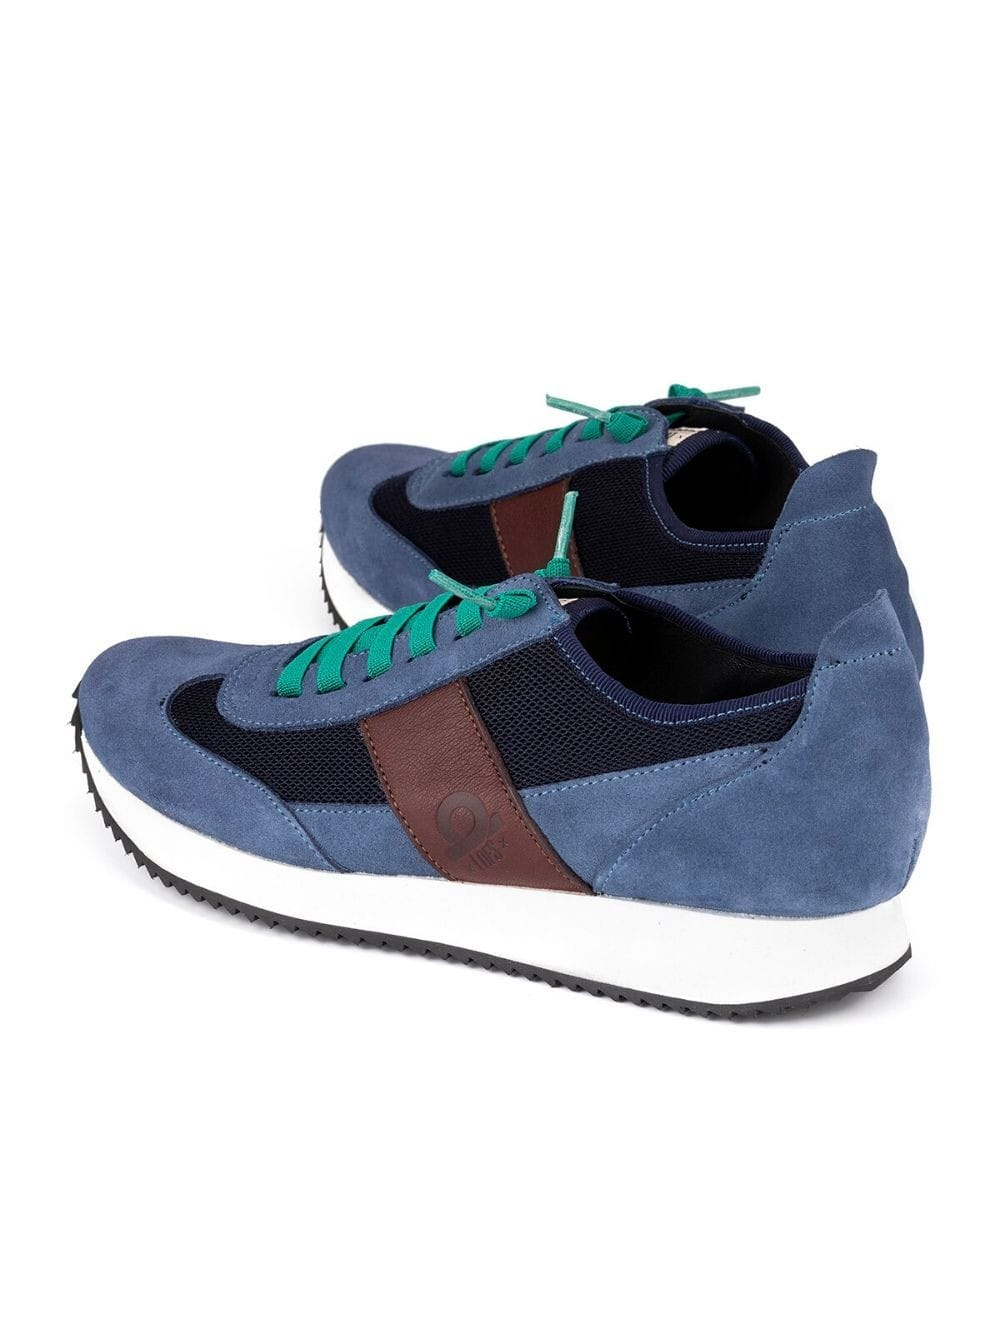 Ecofriendly shoe made locally-Blues